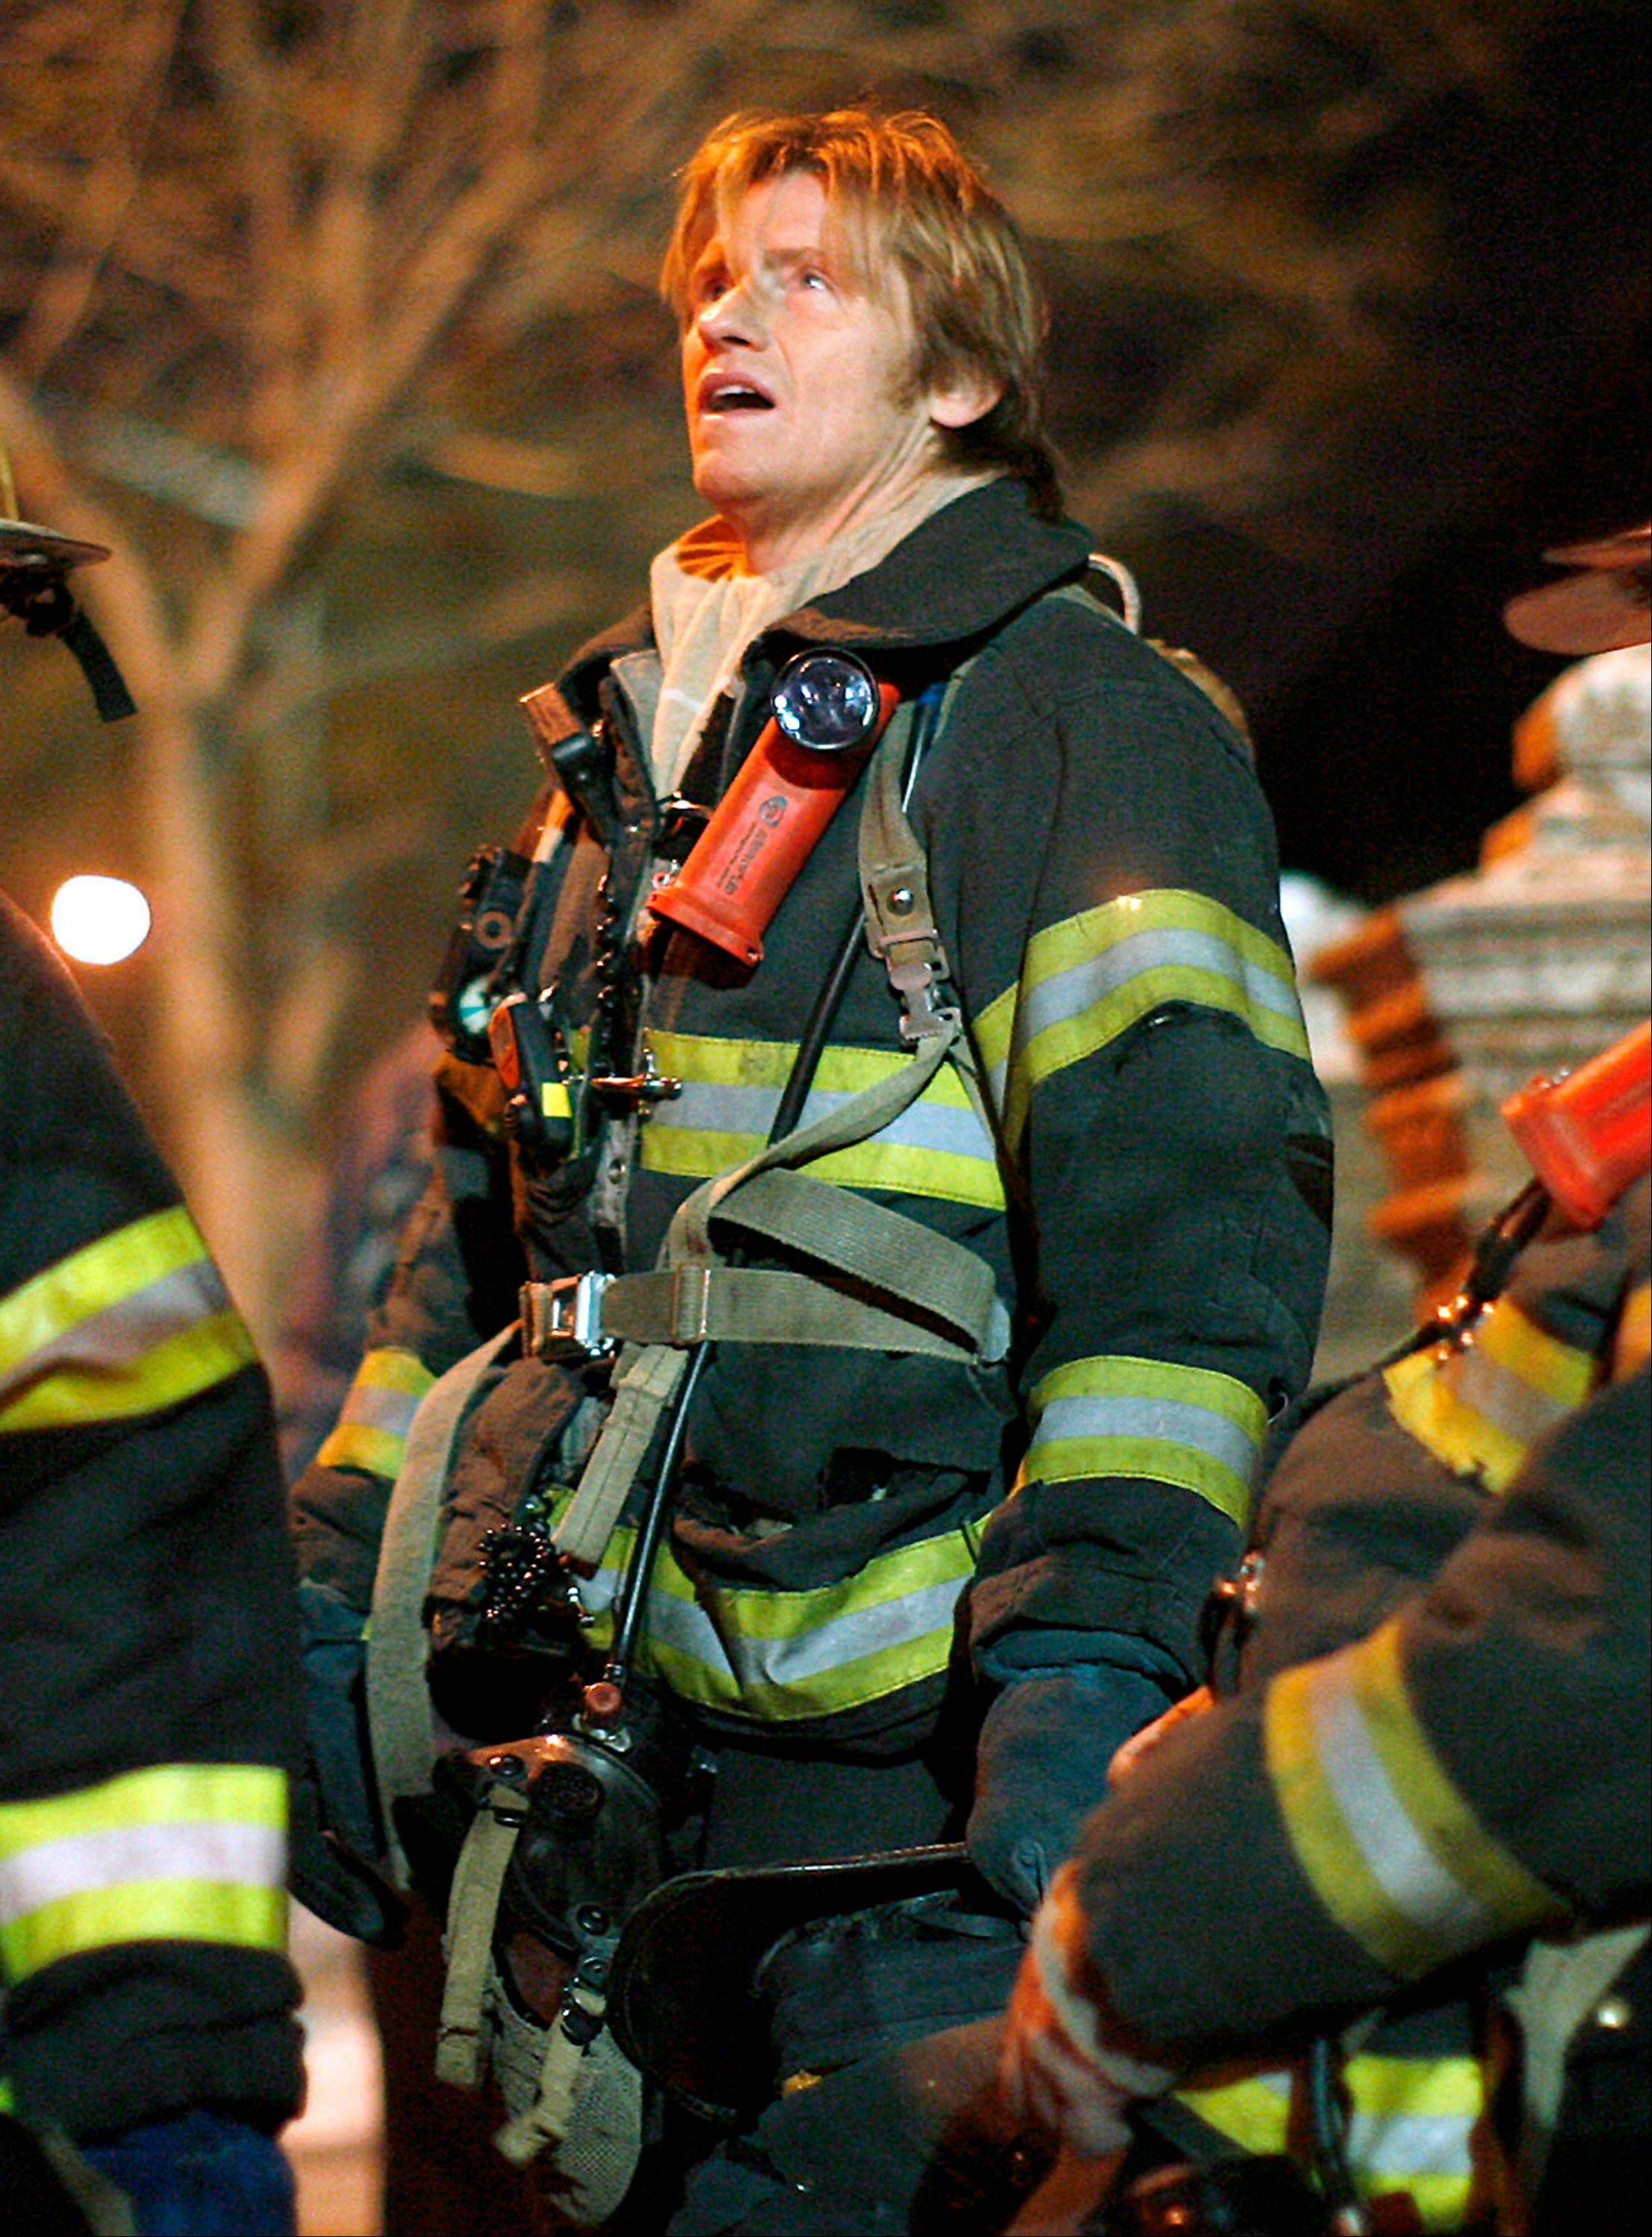 "Actor Denis Leary, who portrays Tommy Gavin, is shown on location during filming for the television show ""Rescue Me"" in New York. The most enduring and penetrating look at life post-9/11 on television has been FX's ""Rescue Me."" Leary's character is haunted by survivor's guilt, which is enhanced by his deceased firefighter cousin's occasional ""visits"" as an apparition."